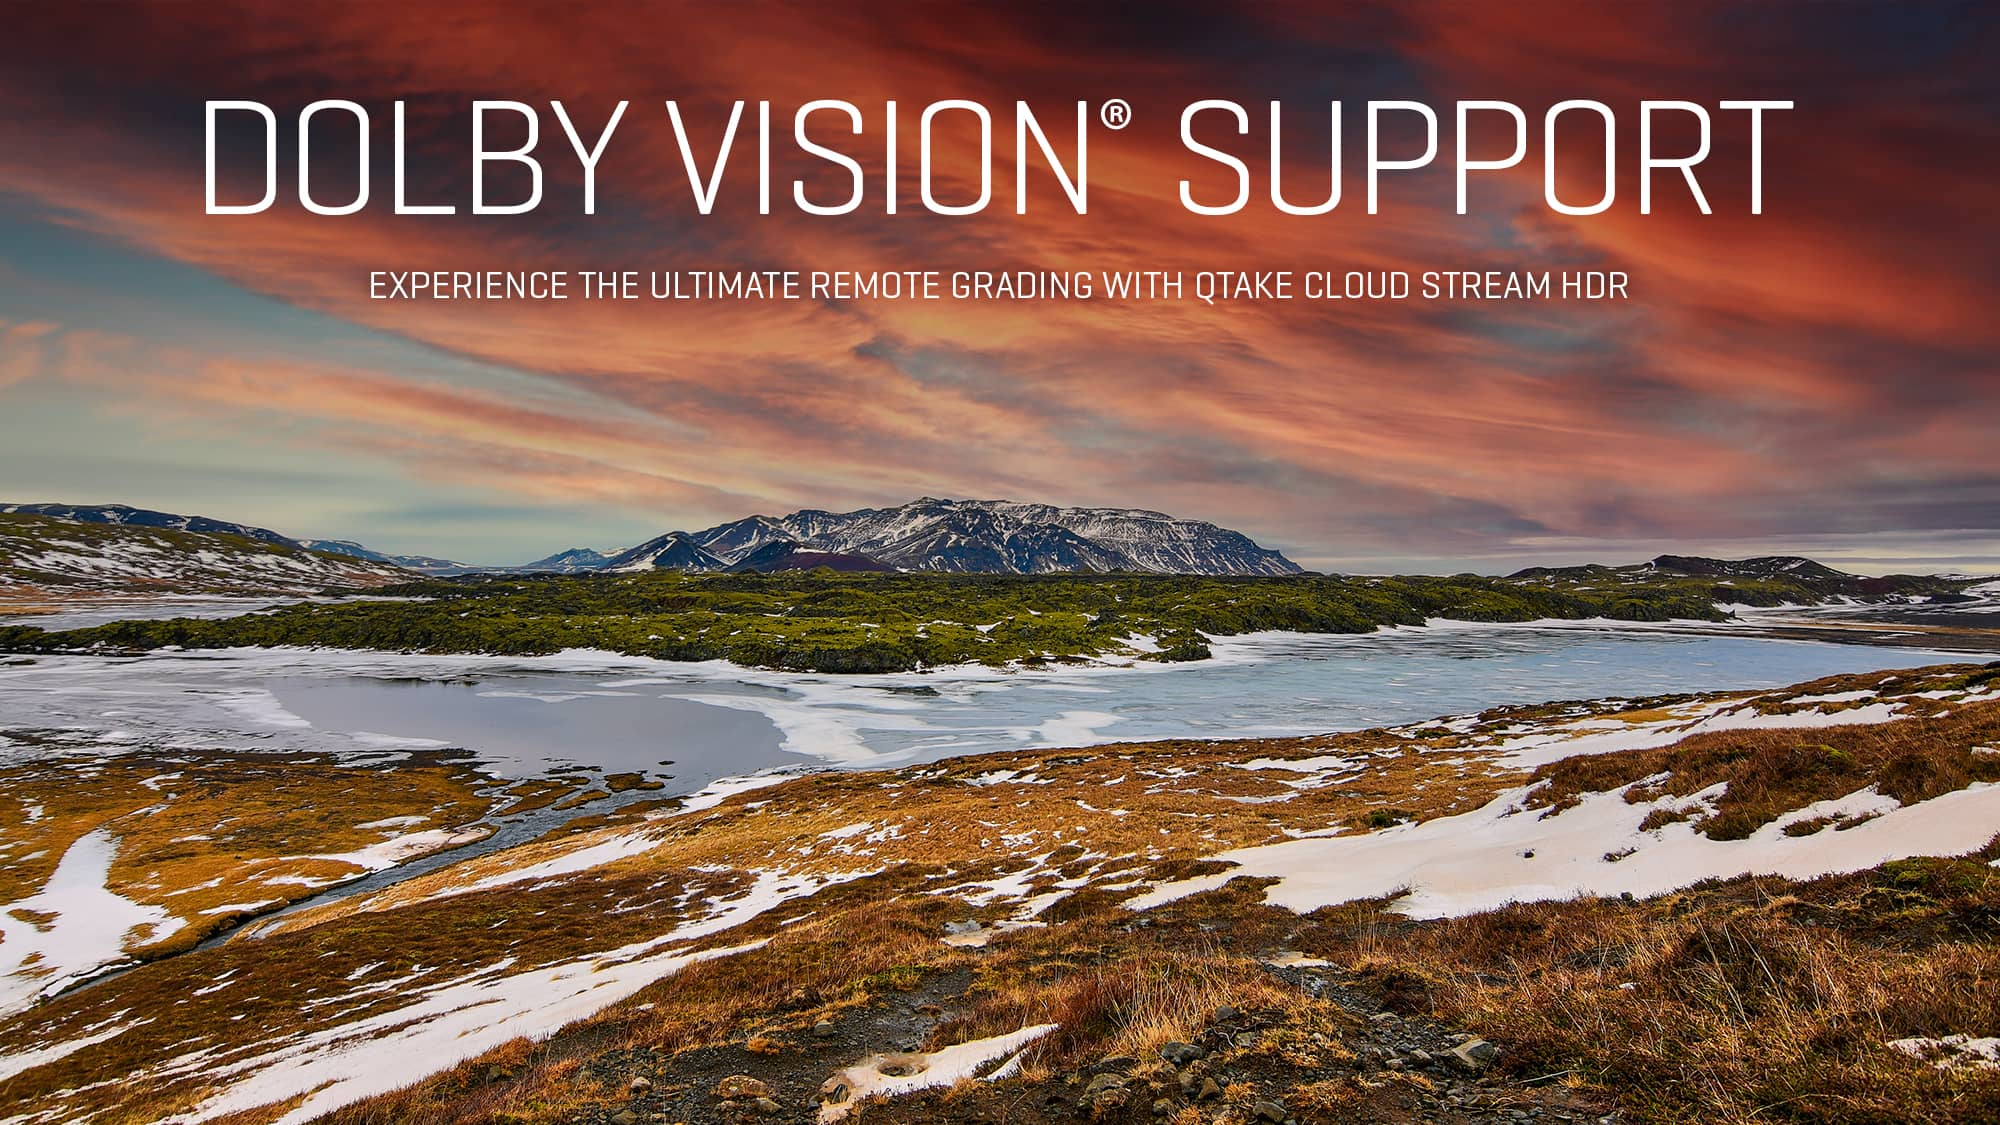 QTAKE Dolby Vision® support